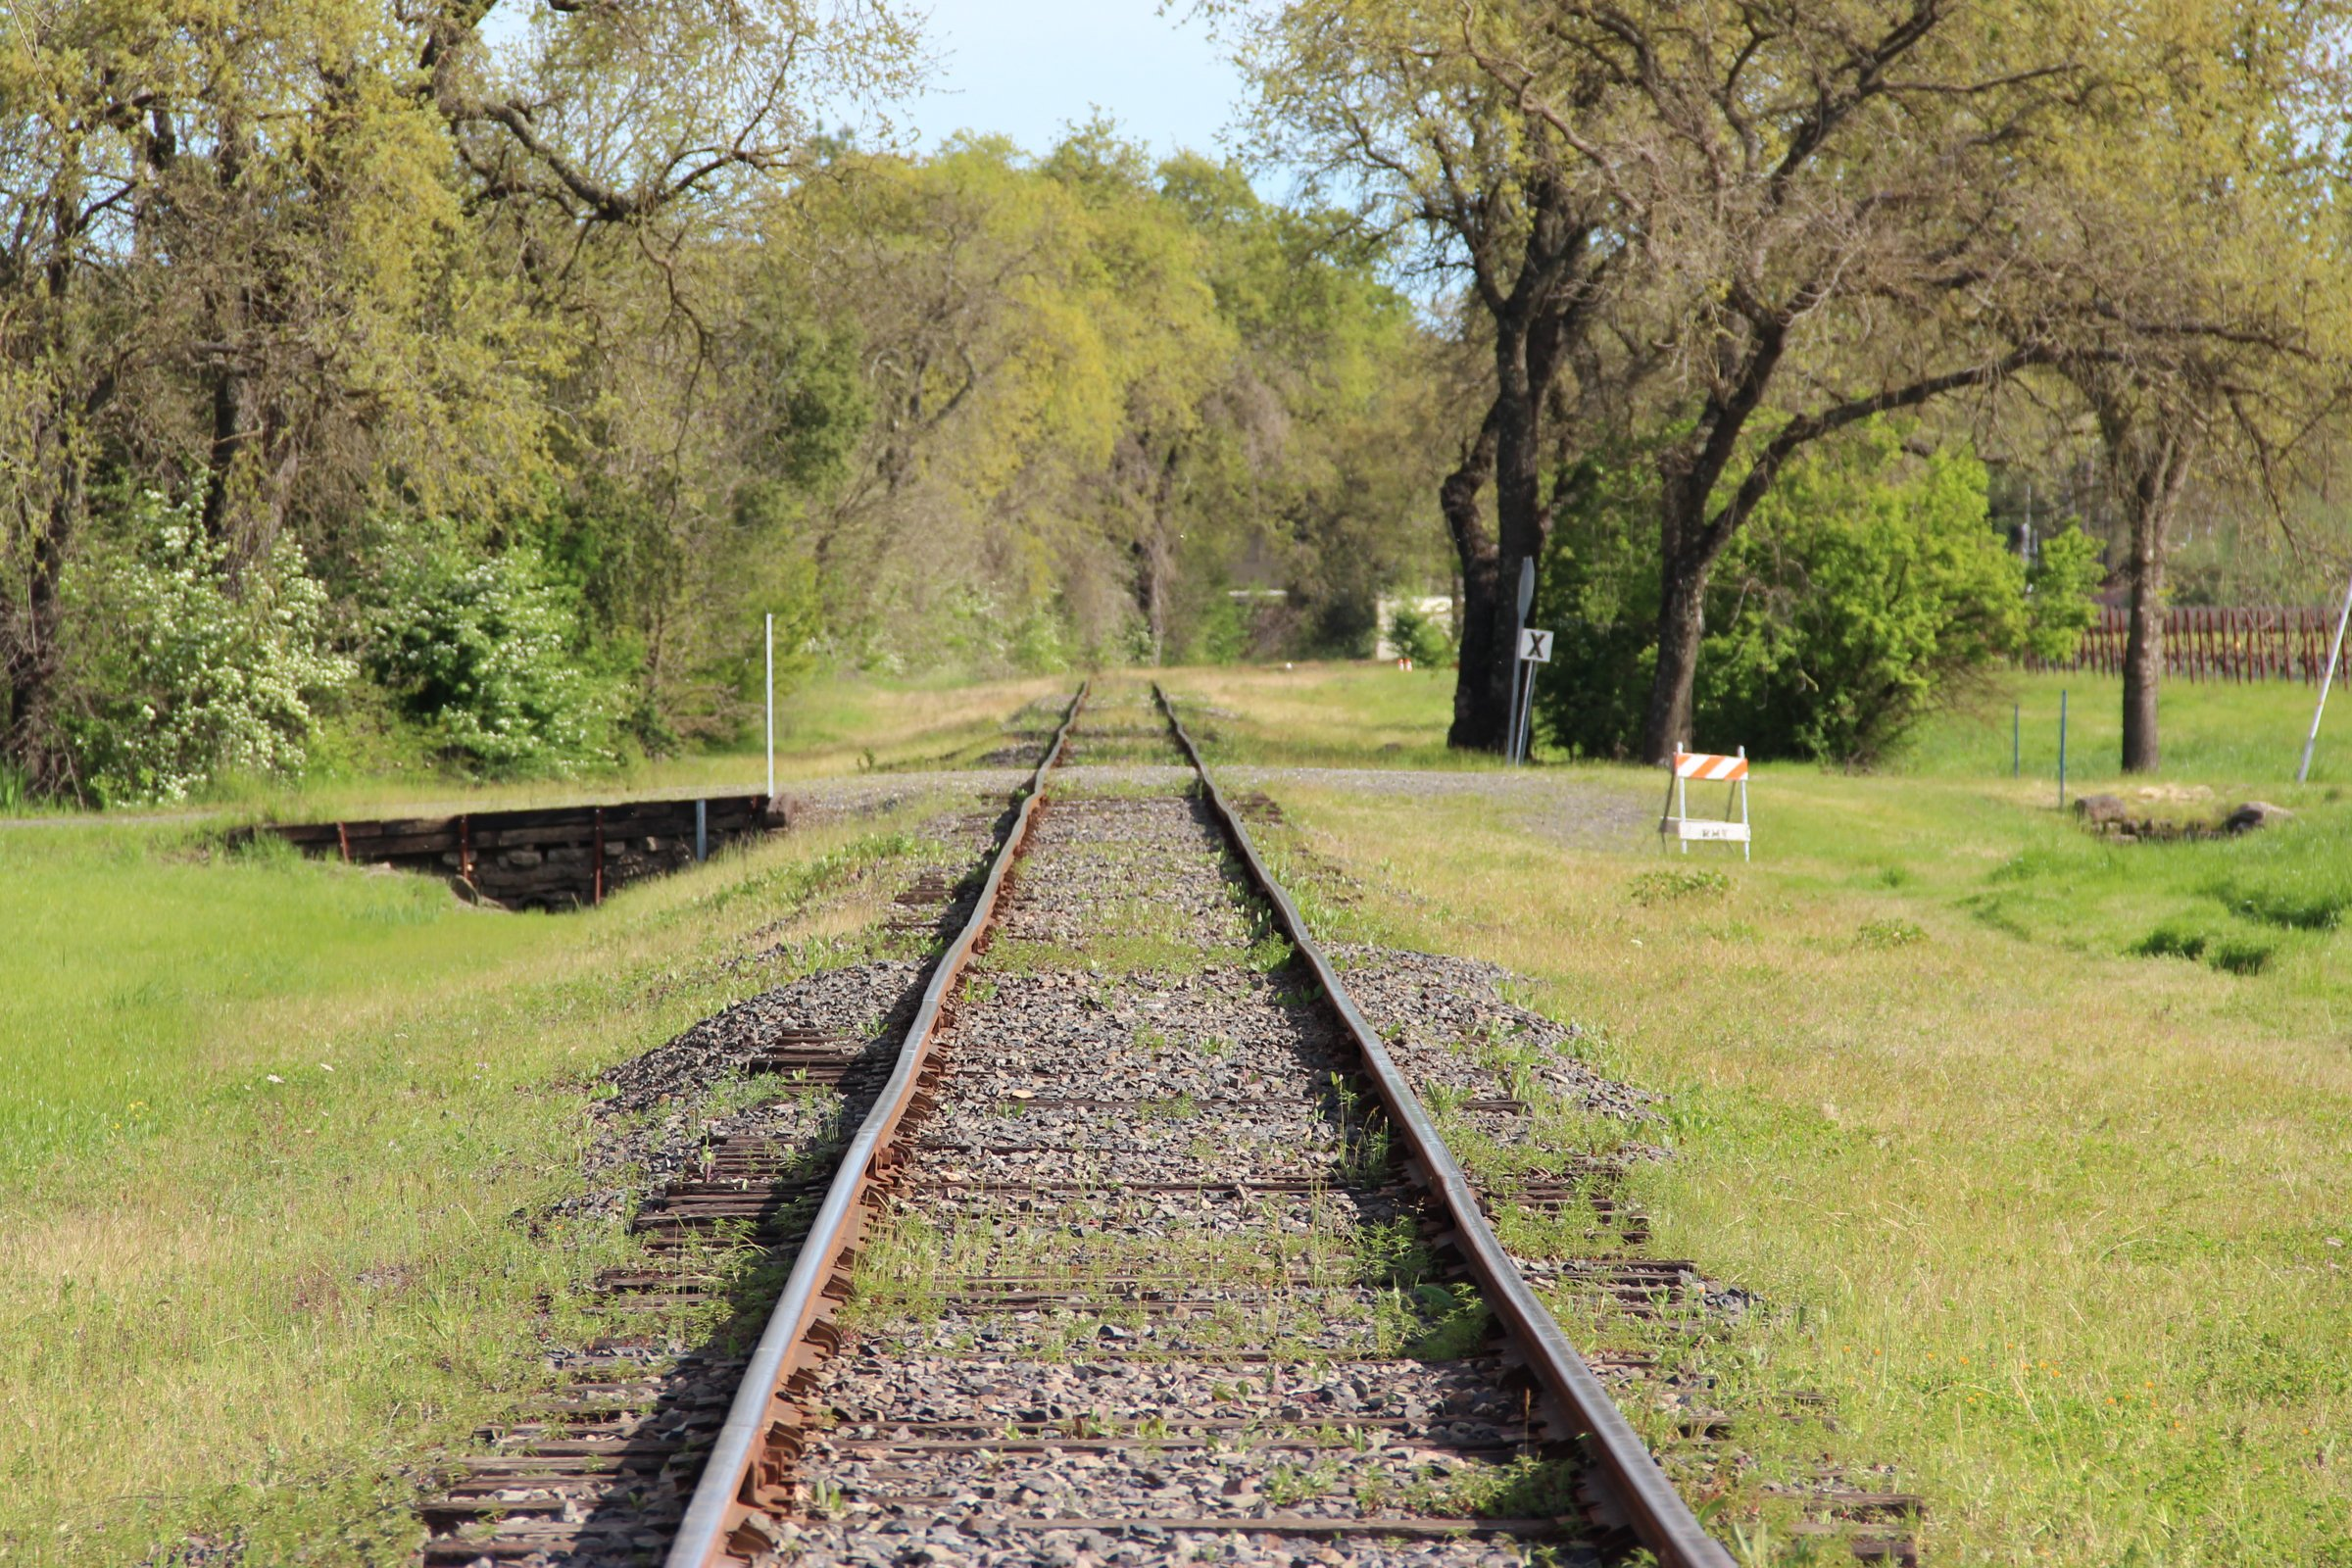 Railroad Tracks on Grass by Trees